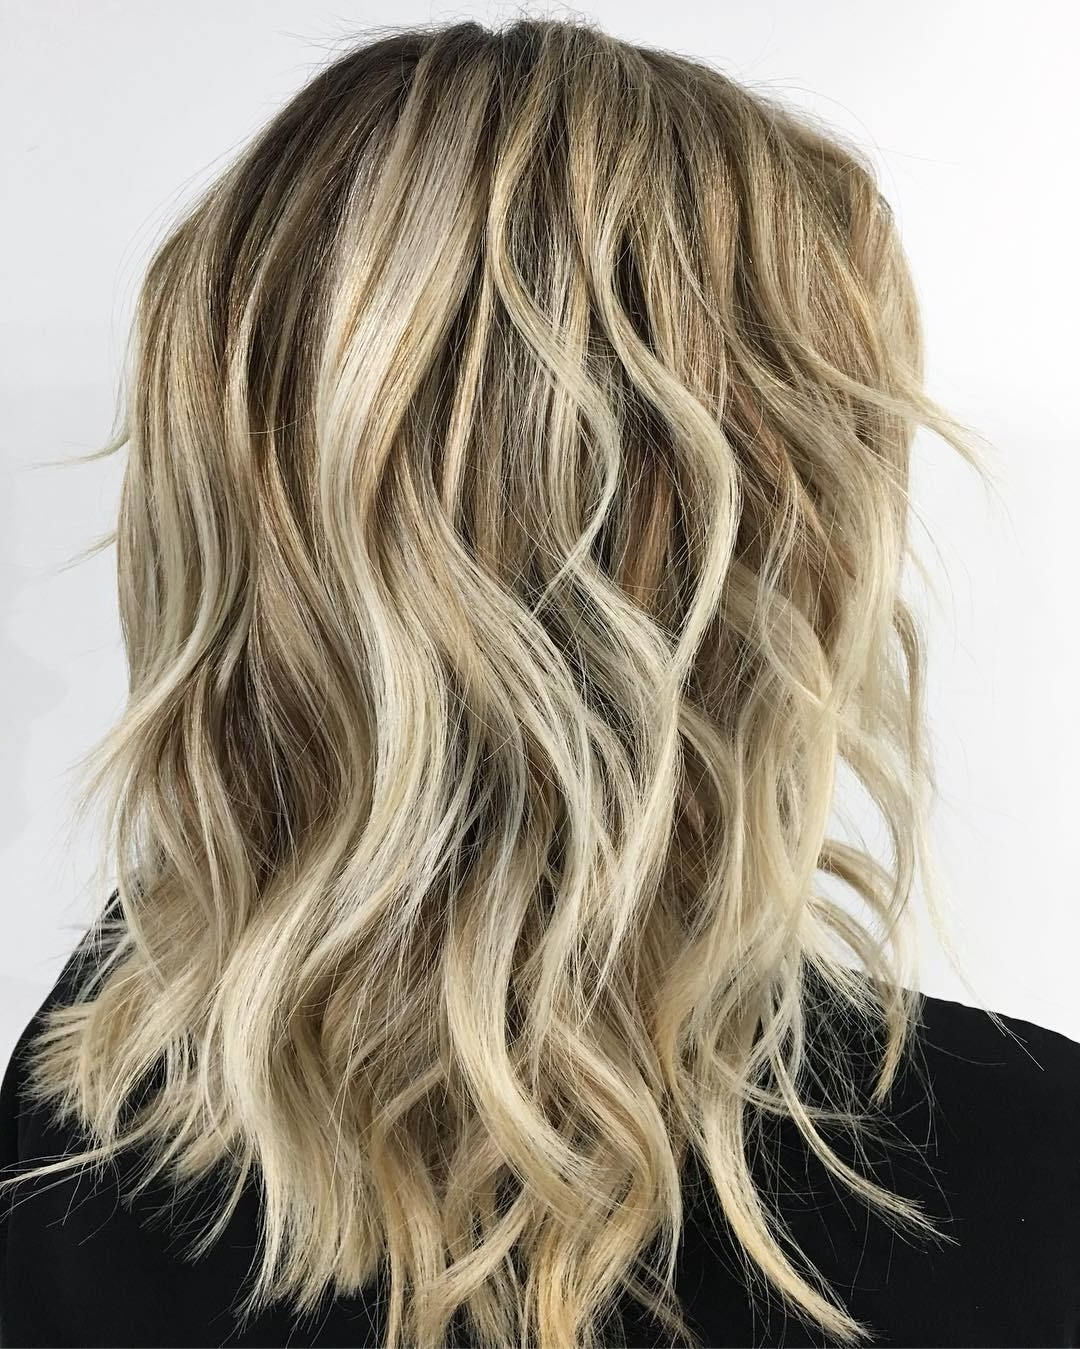 60 Best Variations Of A Medium Shag Haircut For Your With Fashionable Disconnected Brown Shag Long Hairstyles With Highlights (View 4 of 20)